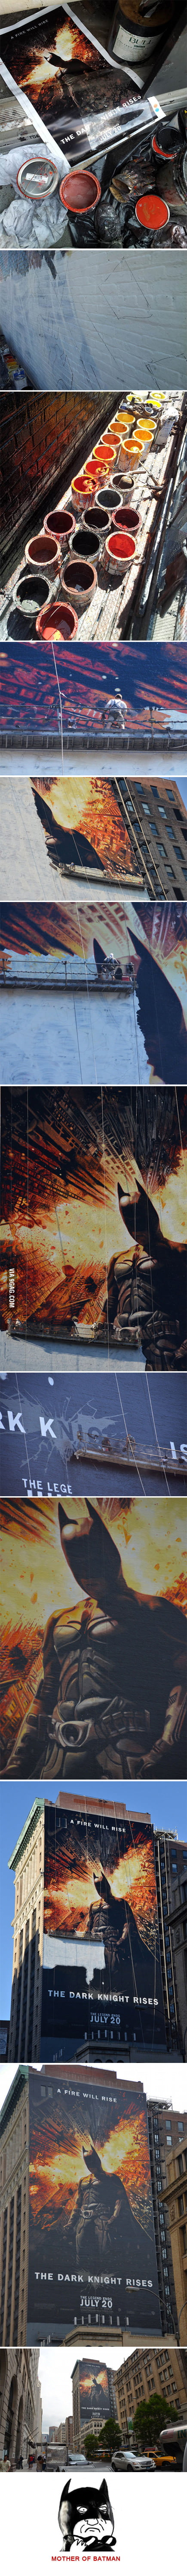 Painting a 150-Foot tall Dark Knight Rises mural like a boss